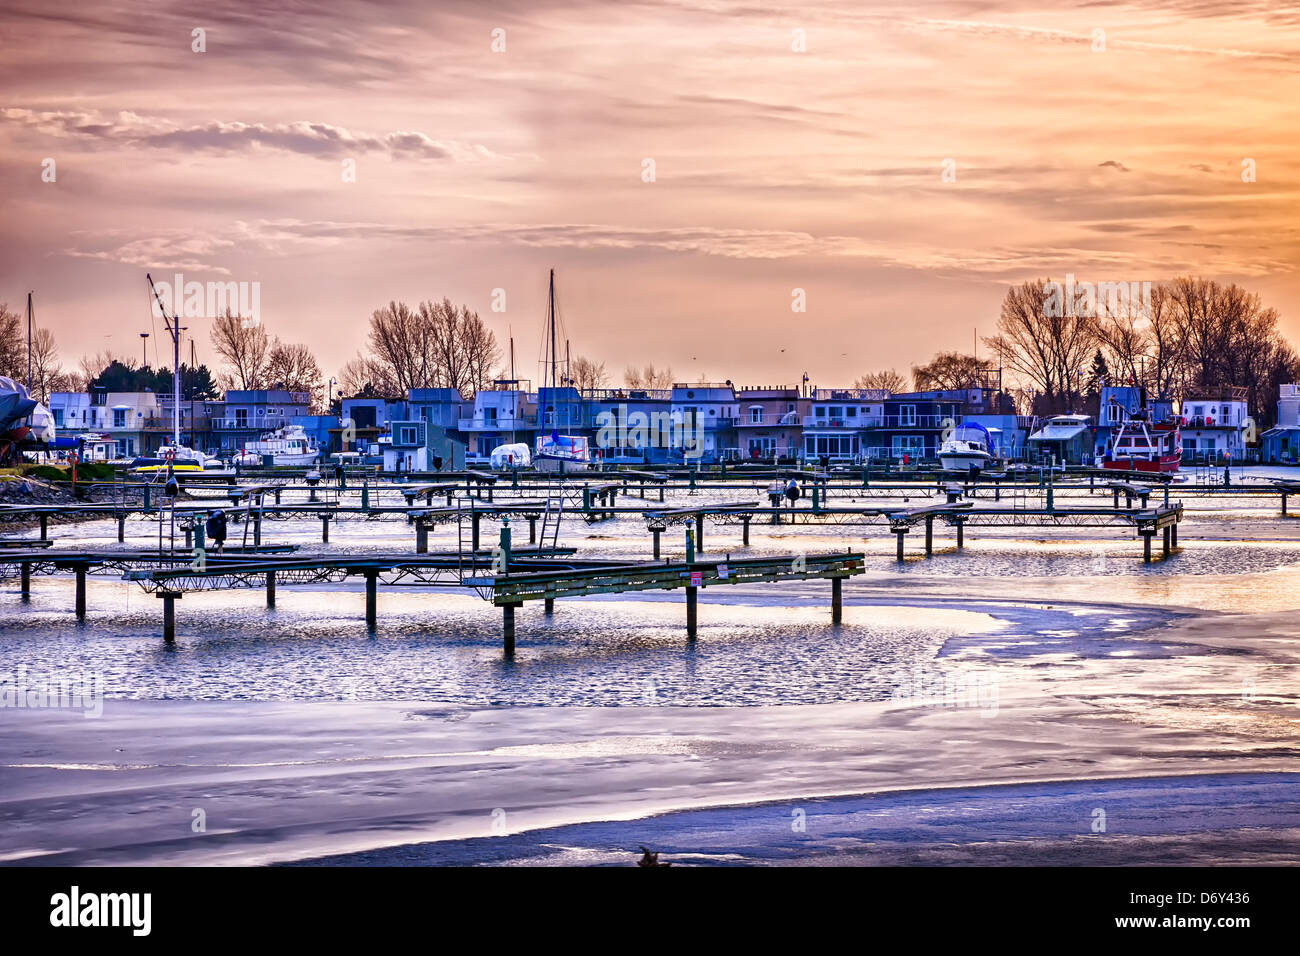 Sunset behind floating homes at Bluffers park marina in Toronto, Canada. Winter. - Stock Image